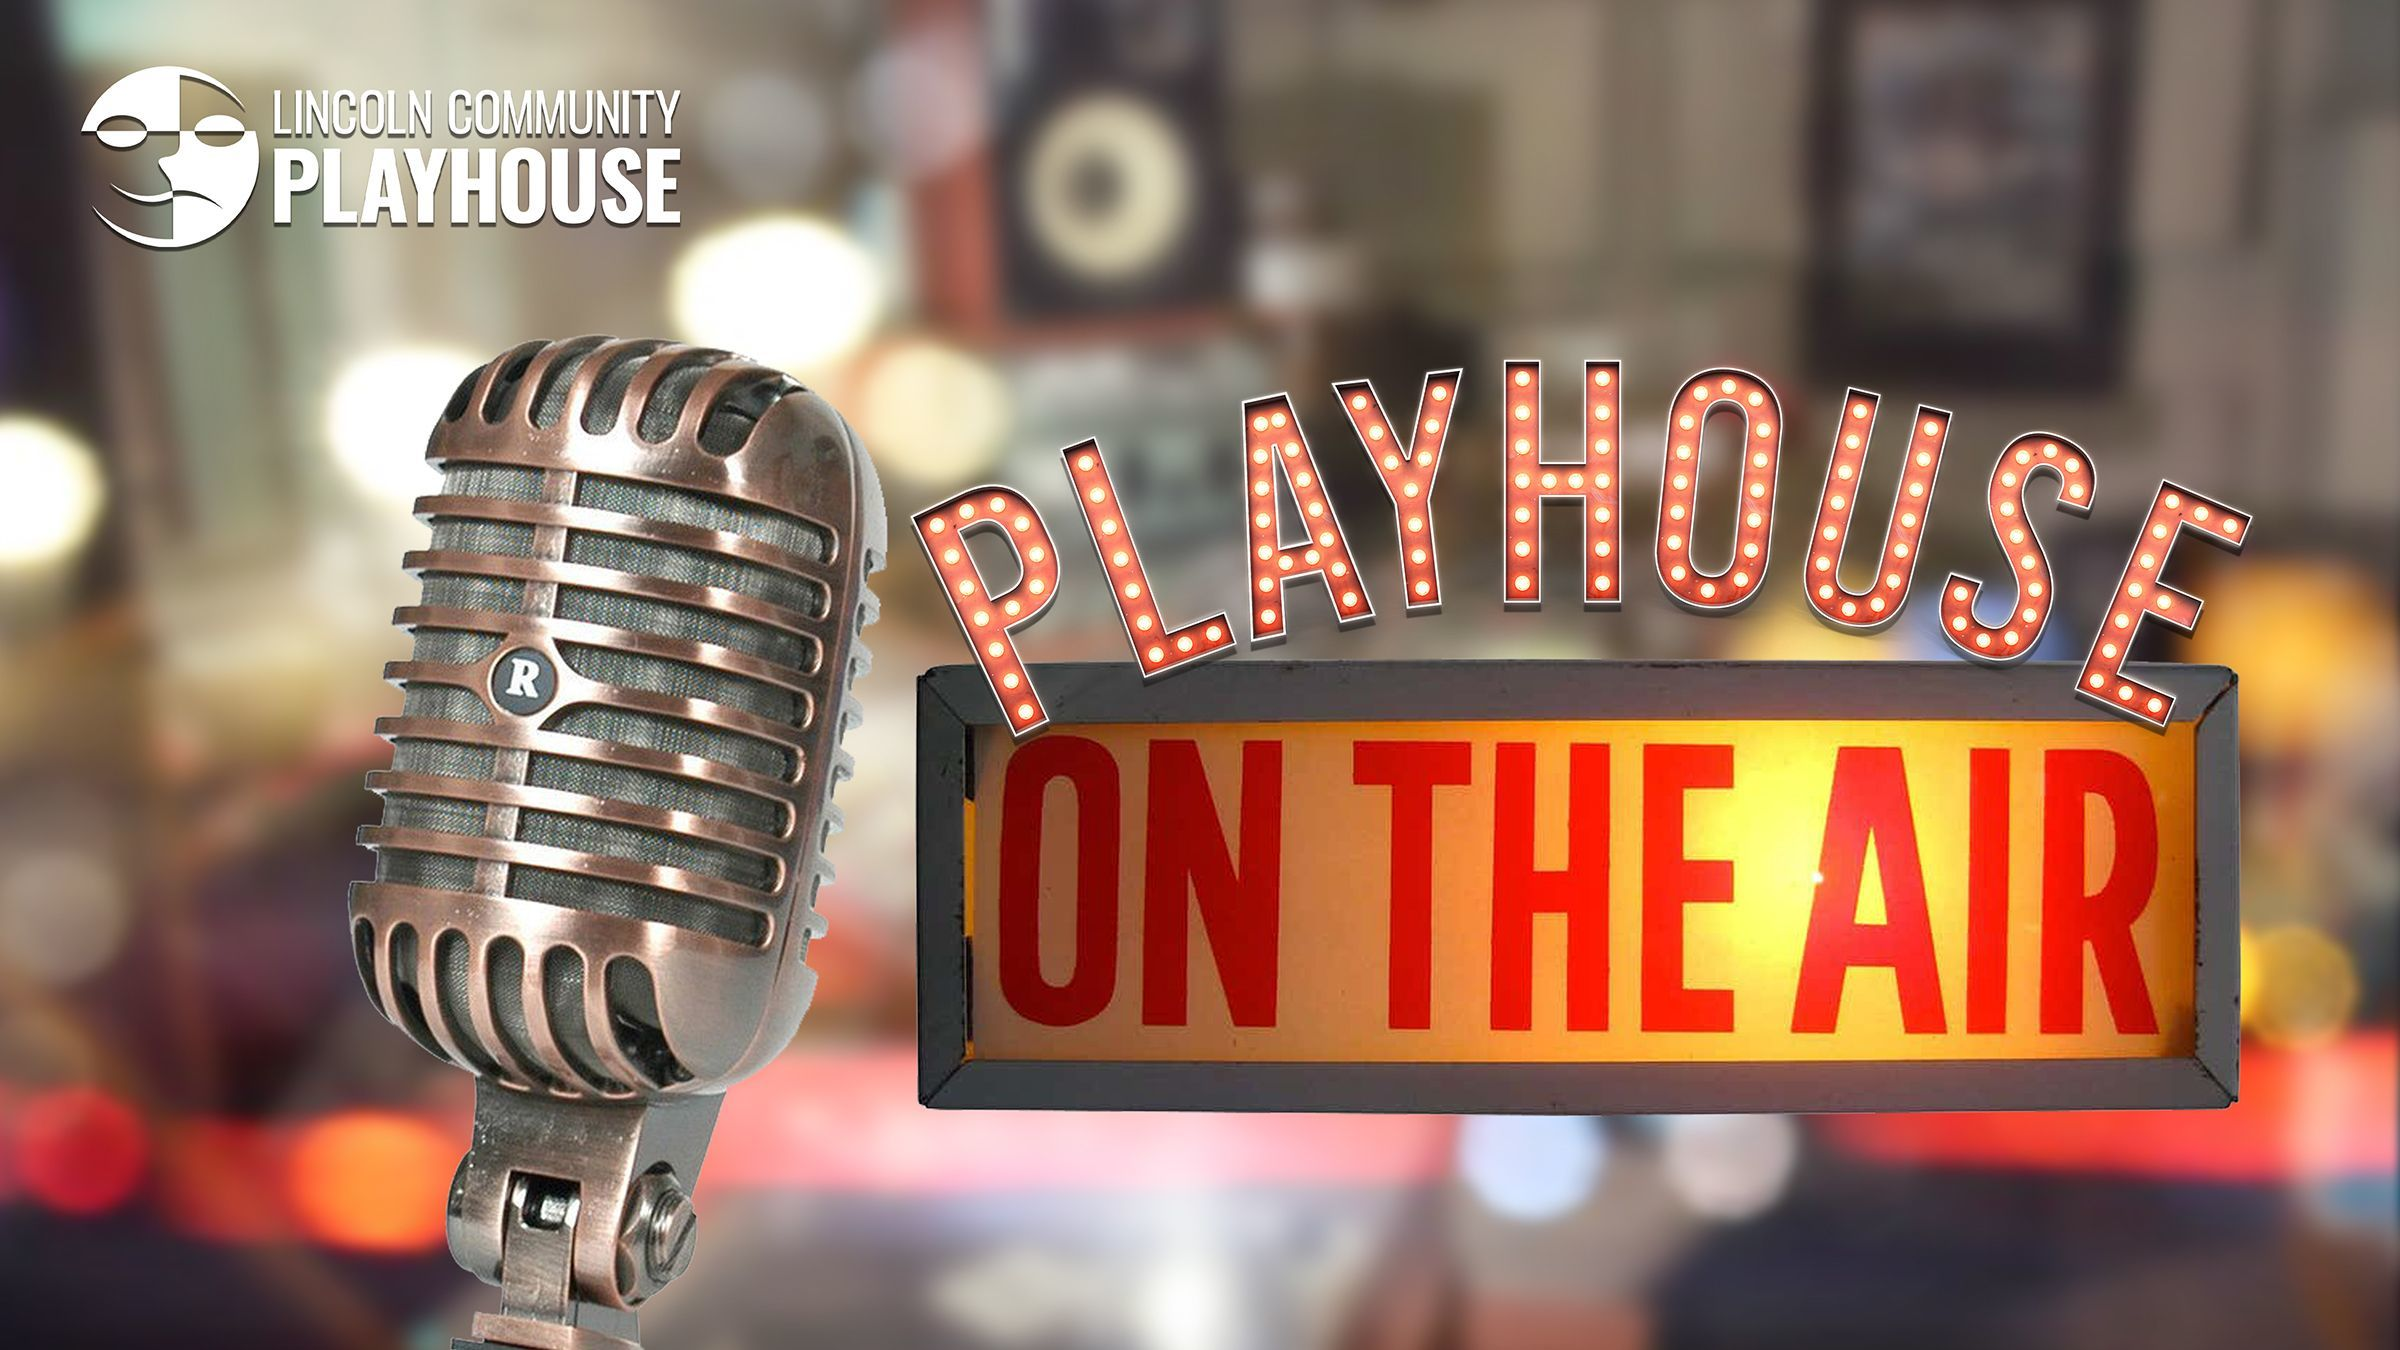 Playhouse On The Air